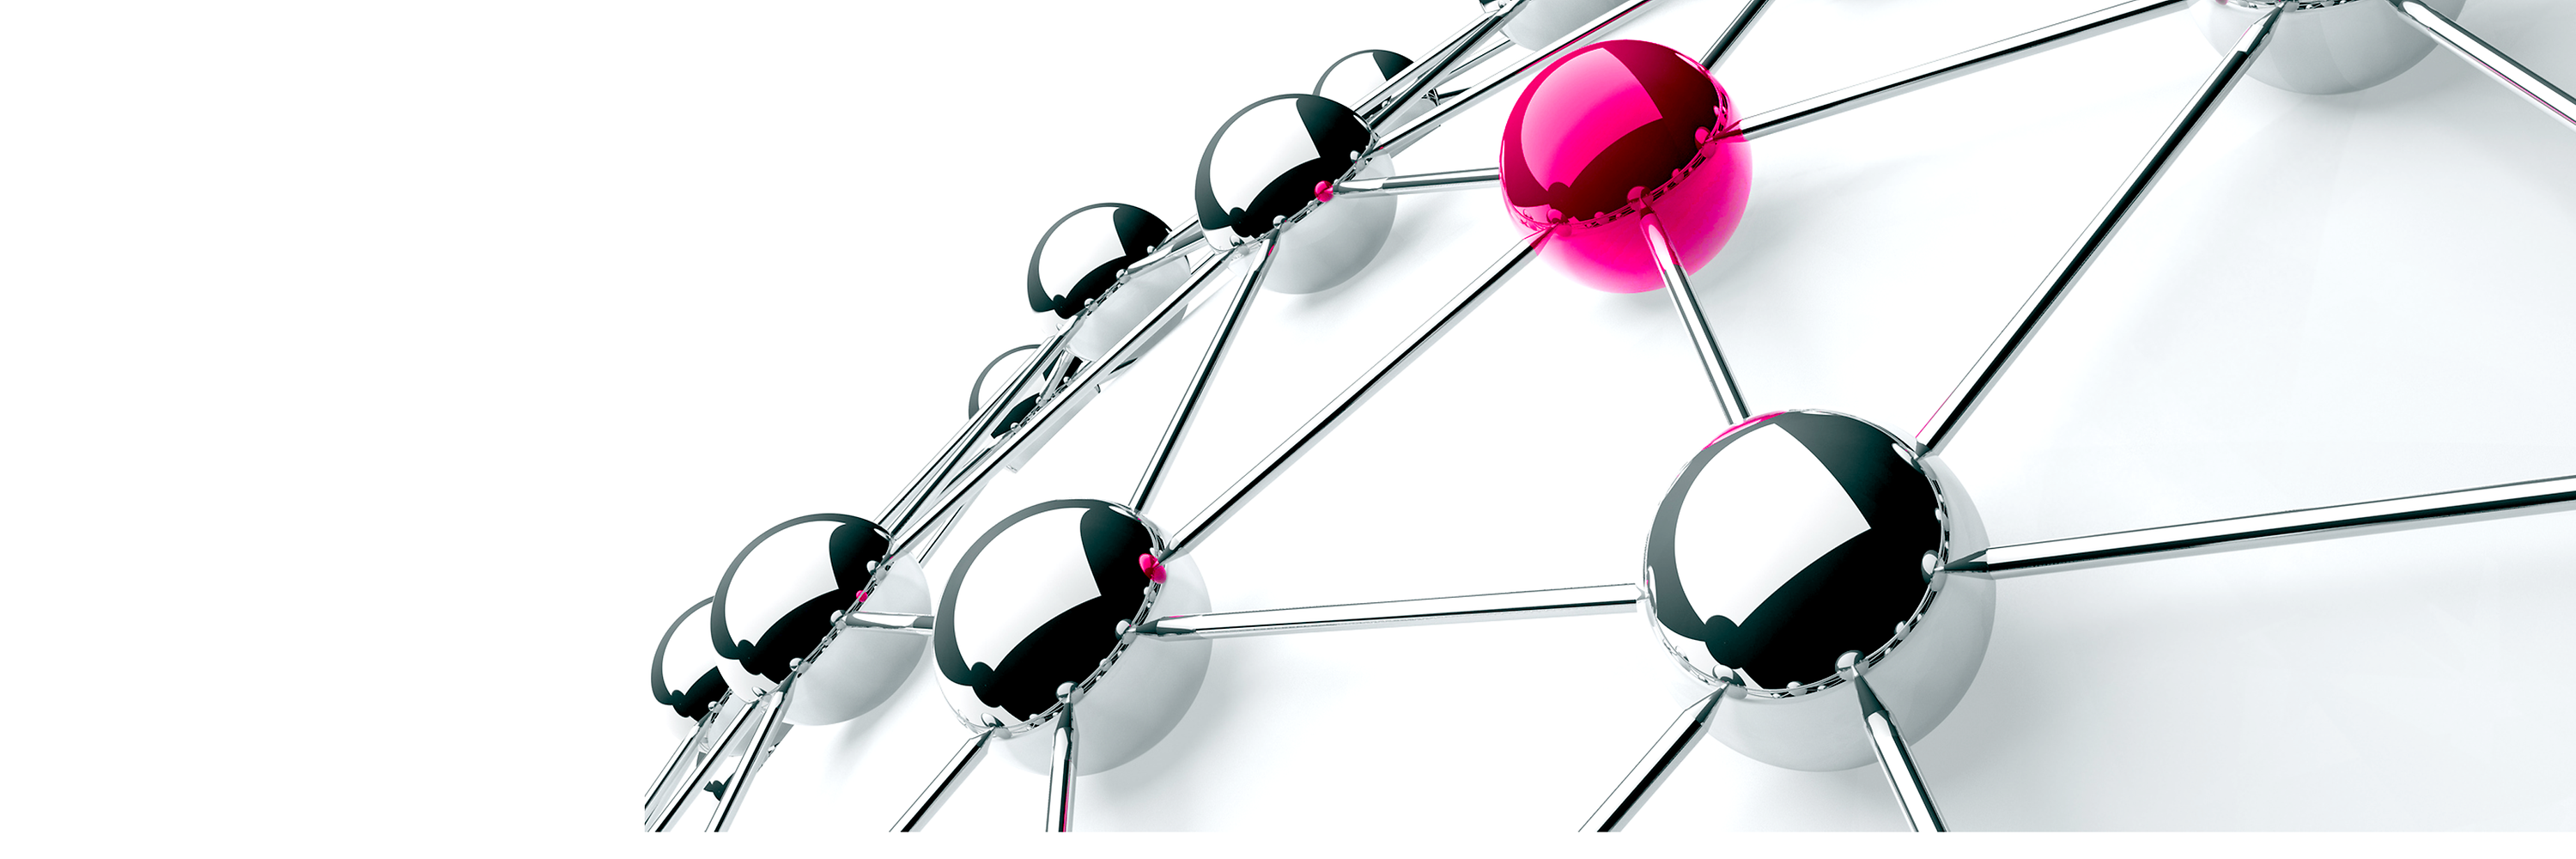 A composition of several connected silver balls and one magenta ball.